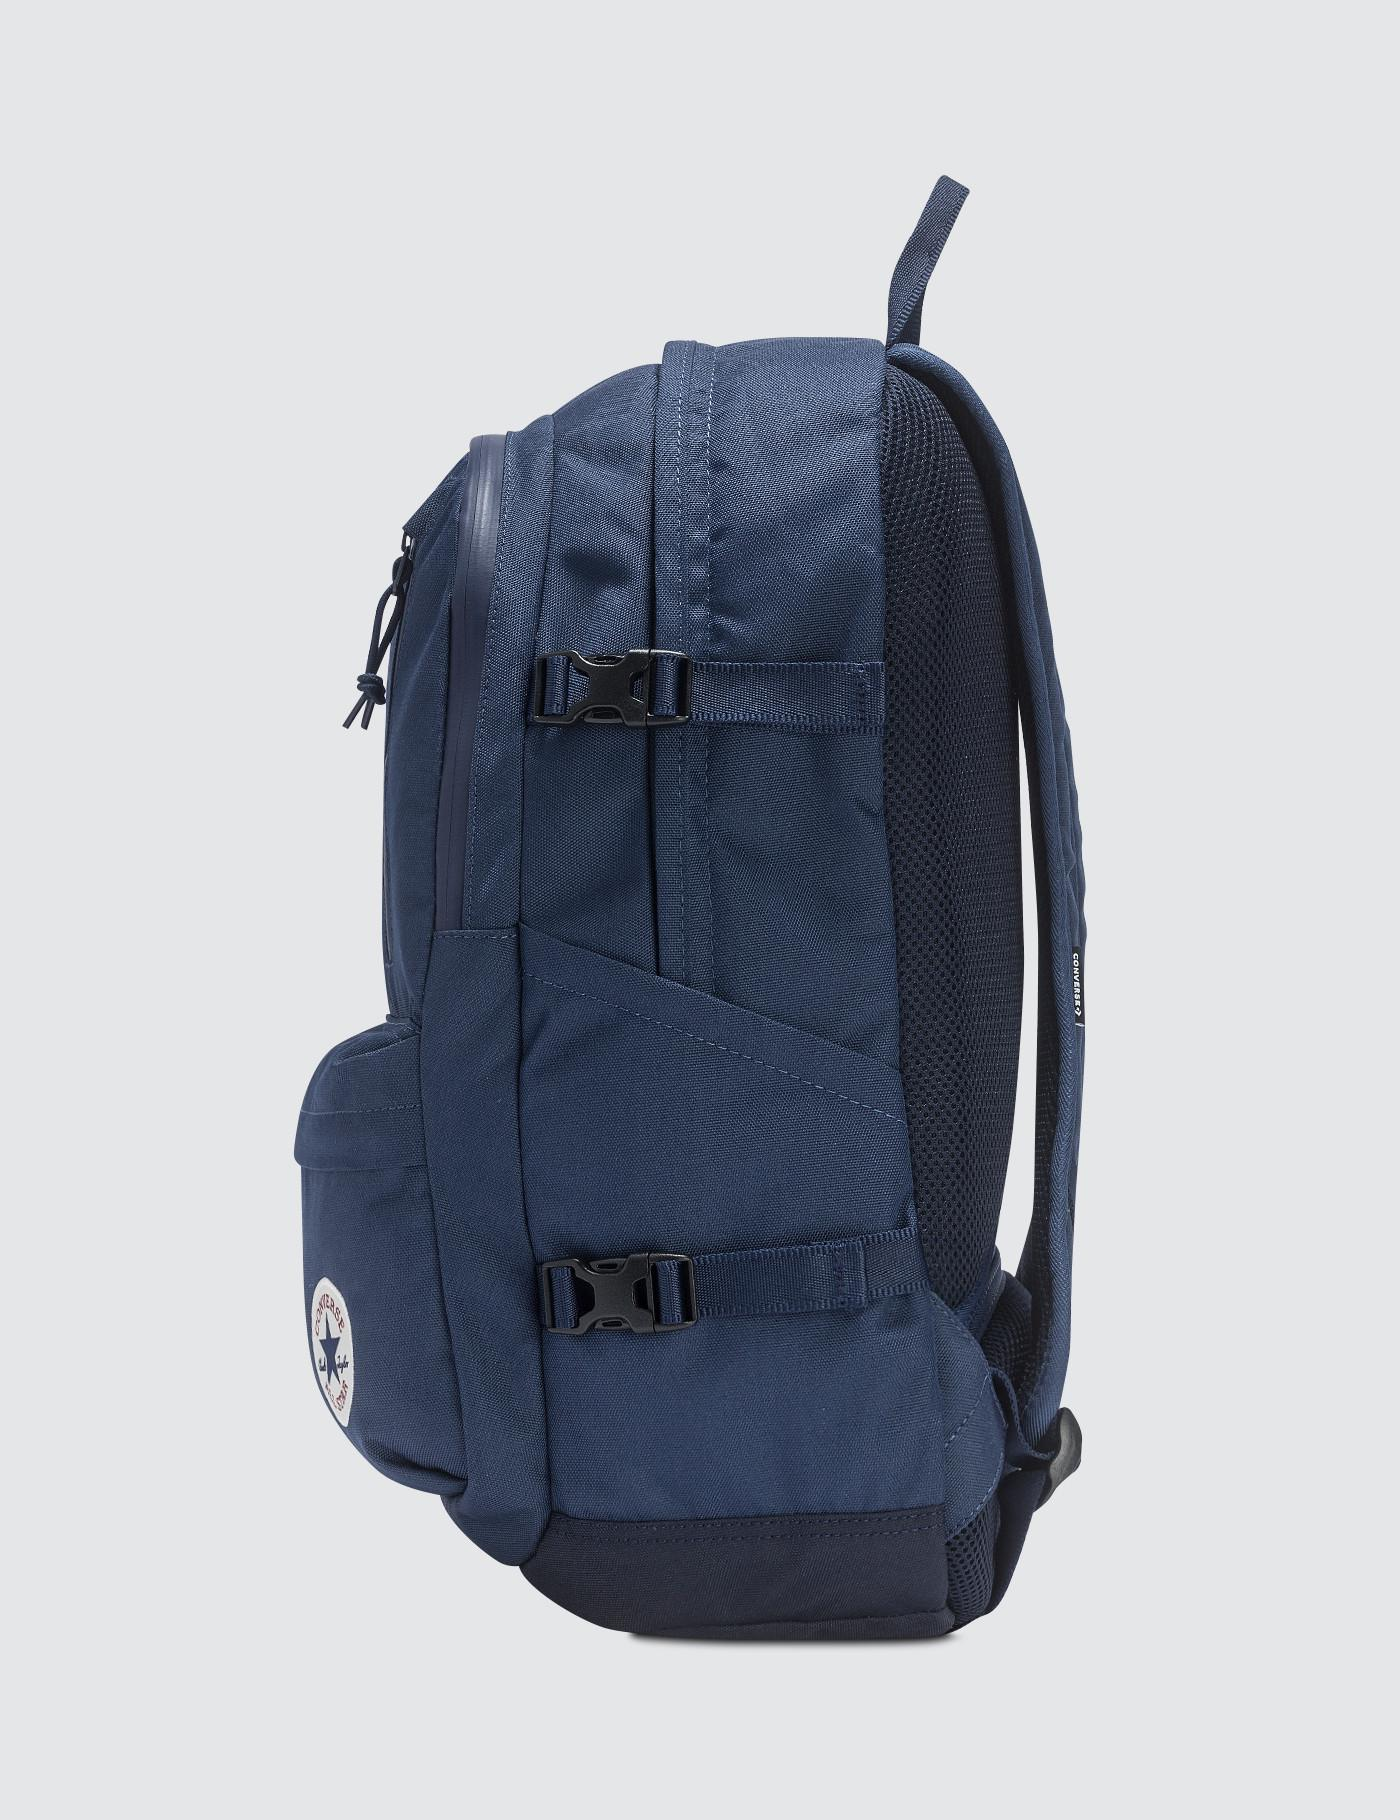 435bf5326d39 Converse Straight Edge Backpack Backpack in Blue for Men - Lyst